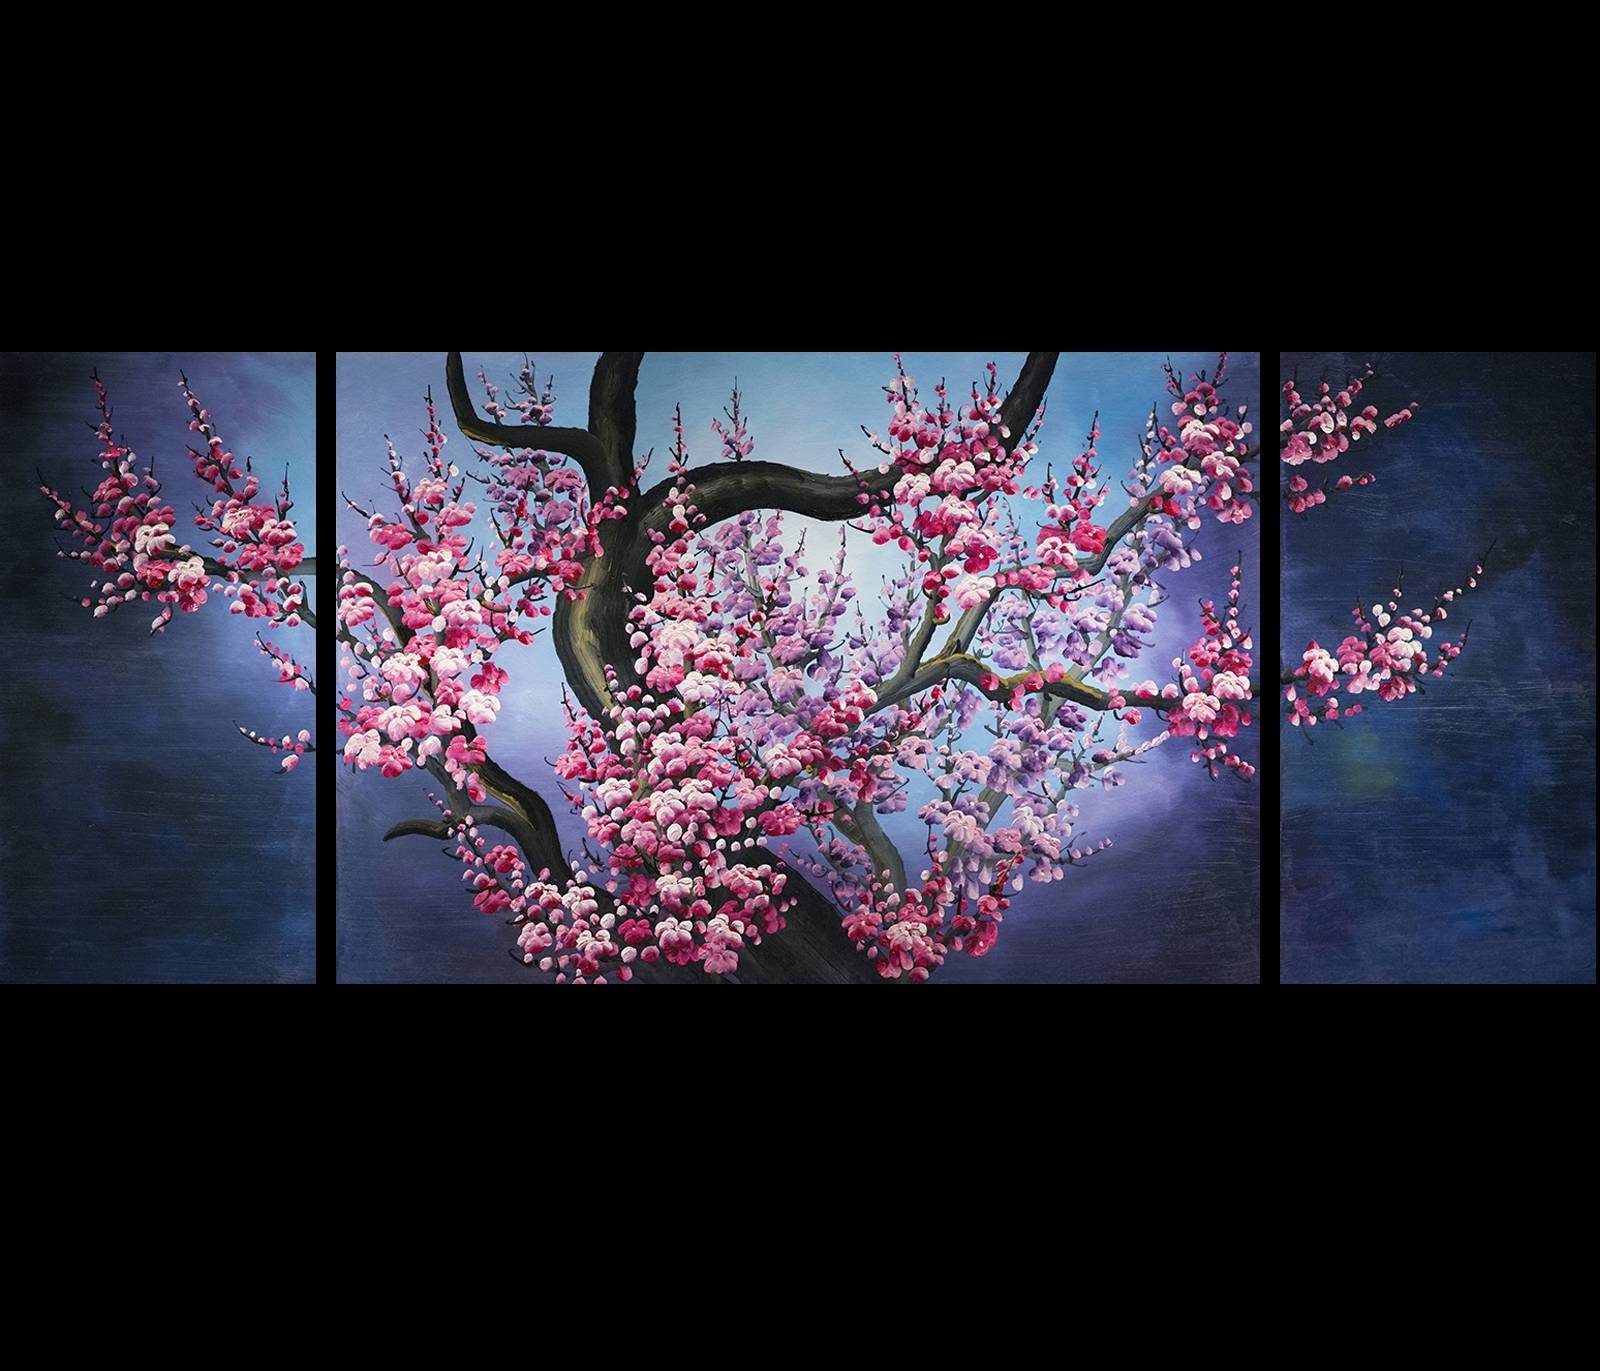 2018 Cherry Blossom Oil Painting Modern Abstract Wall Art In Japanese Cherry Blossom Painting Abstract Art Canvas Wall Art (View 10 of 15)